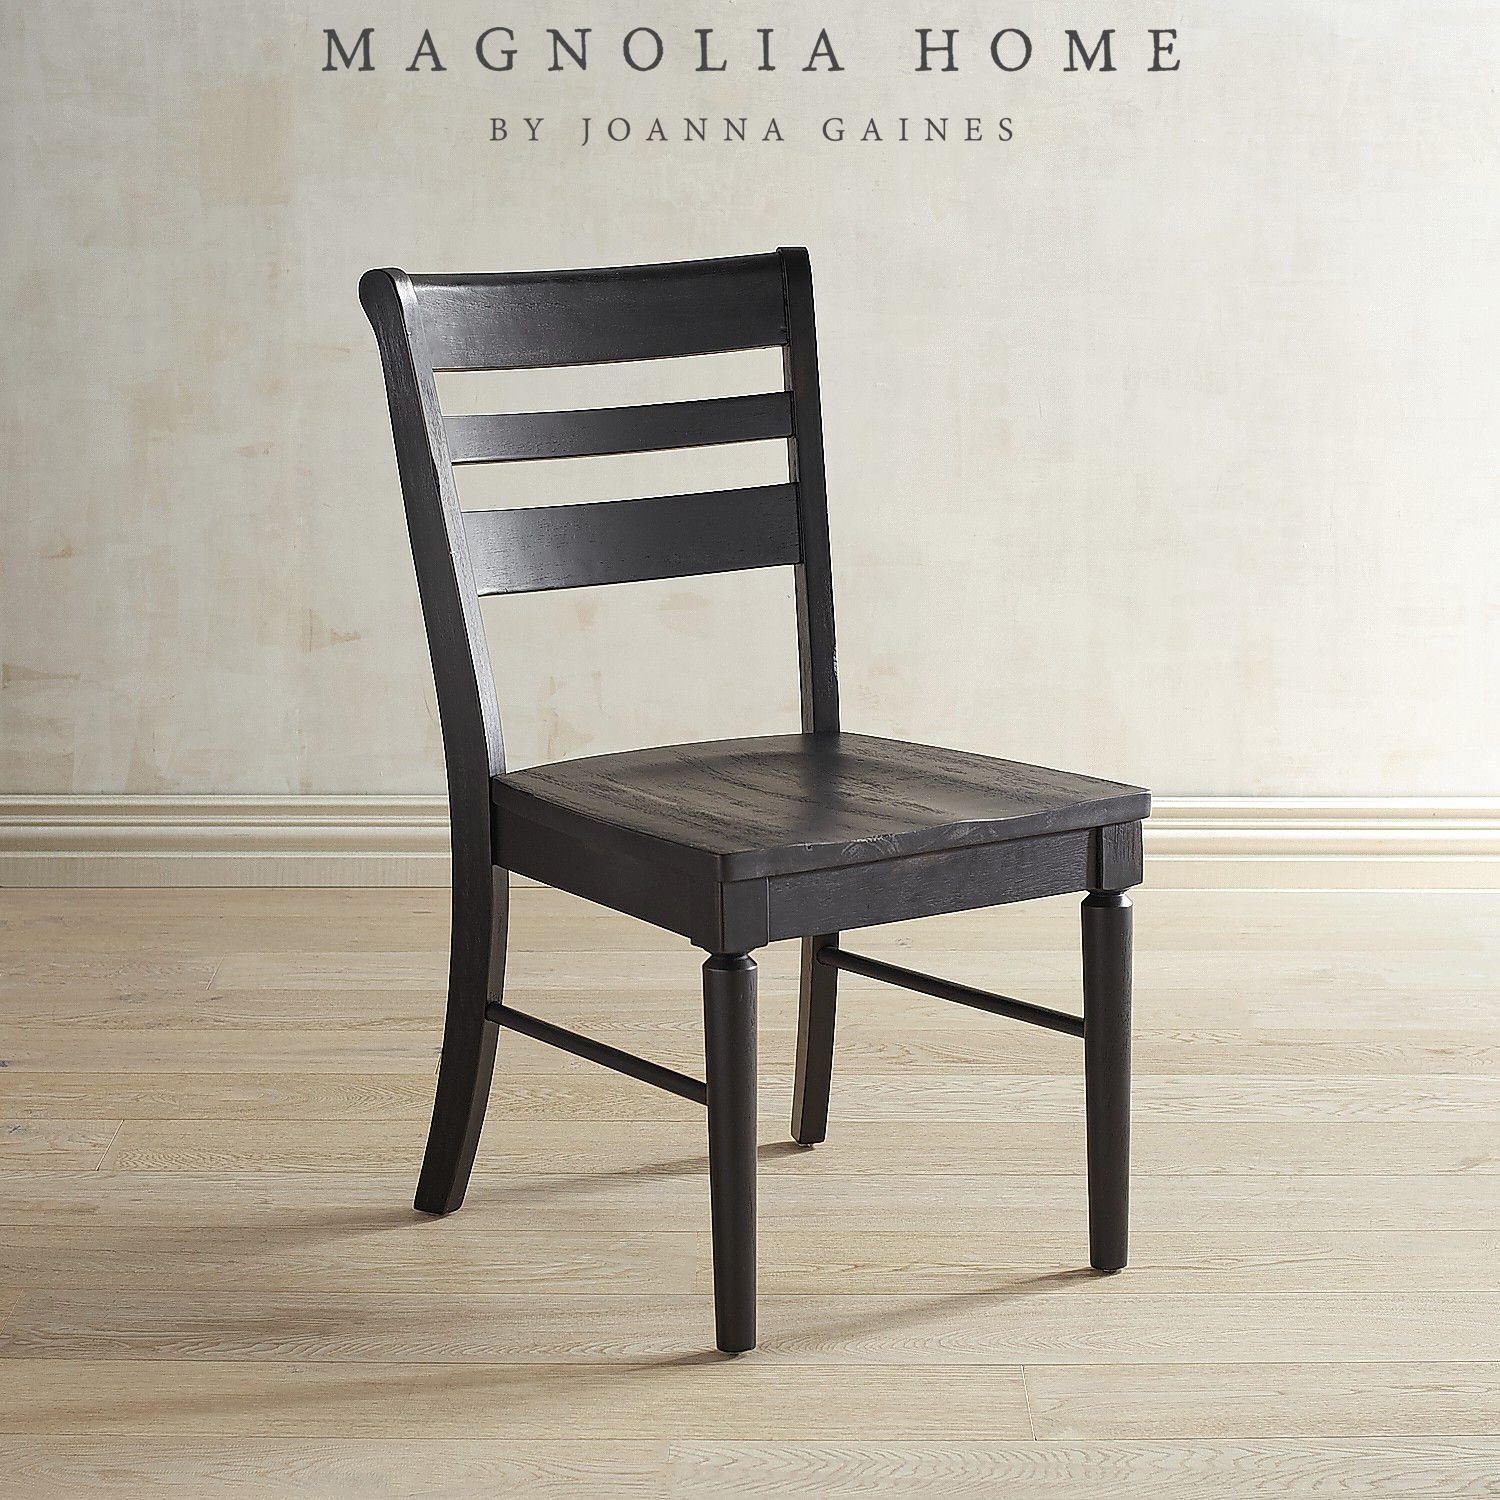 Magnolia Home Kempton Bench Side Chairs Intended For Famous Magnolia Home Kempton Chimney Dining Chair (View 9 of 20)